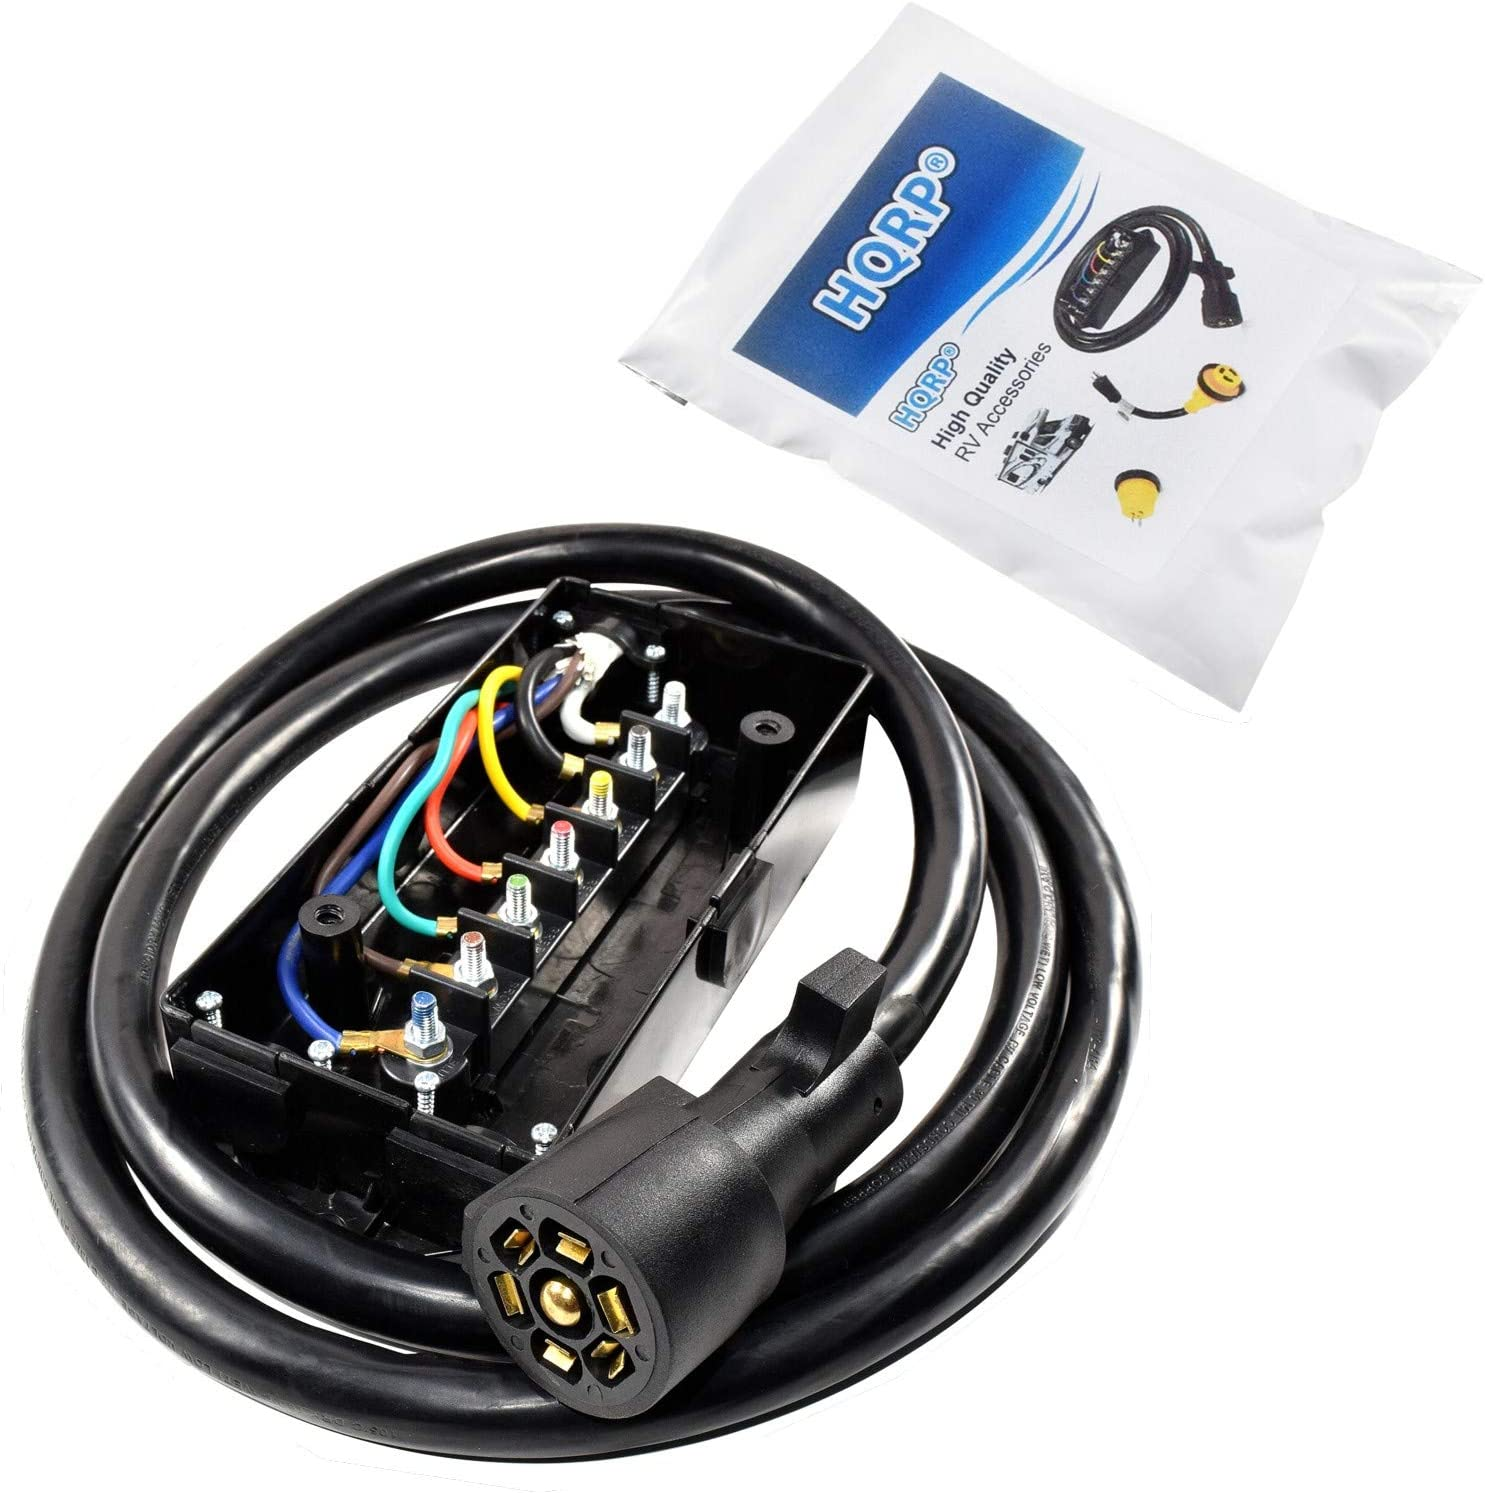 [DIAGRAM_34OR]  Amazon.com: HQRP 7-Way Plug Inline Trailer Cord / 7-Pin Wiring Harness  w/Junction Box / 7 Blade Wire Cable Towing Wiring Connect Kit for RV Camper  Truck - 4ft, Weatherproof and Corrosion Resistant: | Truck Camper Wire Harness |  | Amazon.com